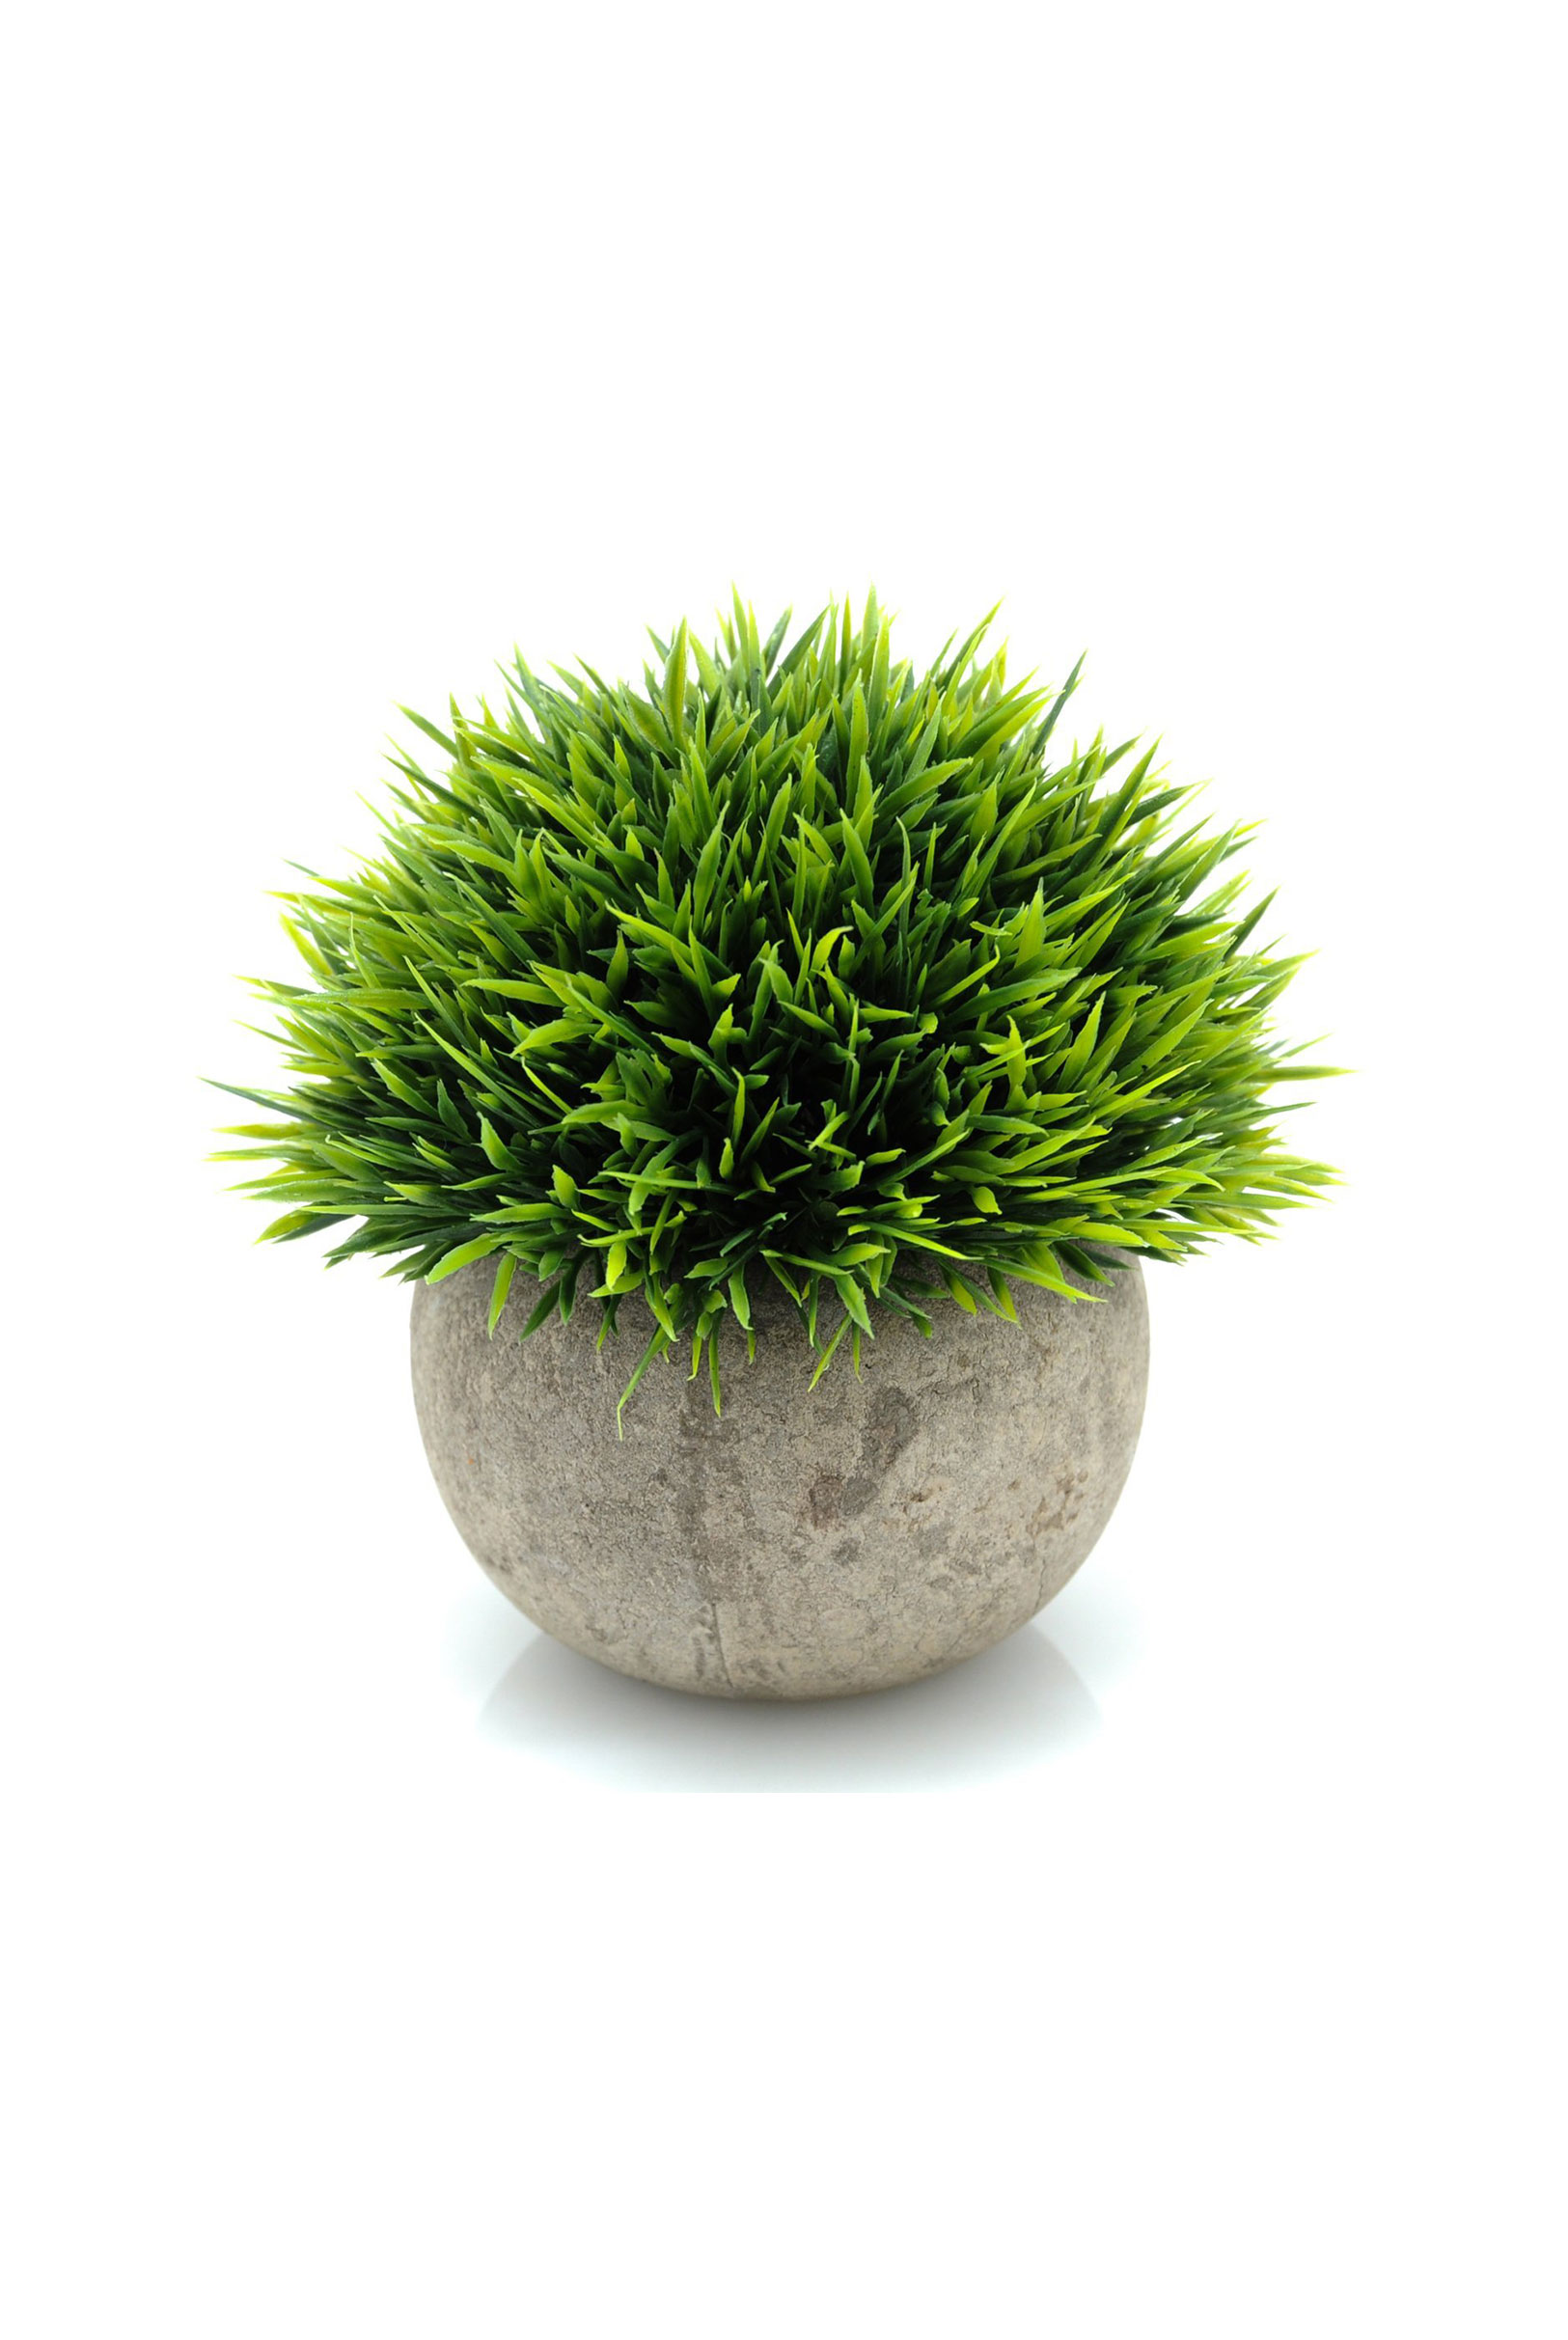 Velener-Mini-Plastic-Fake-Green-Grass.jpg